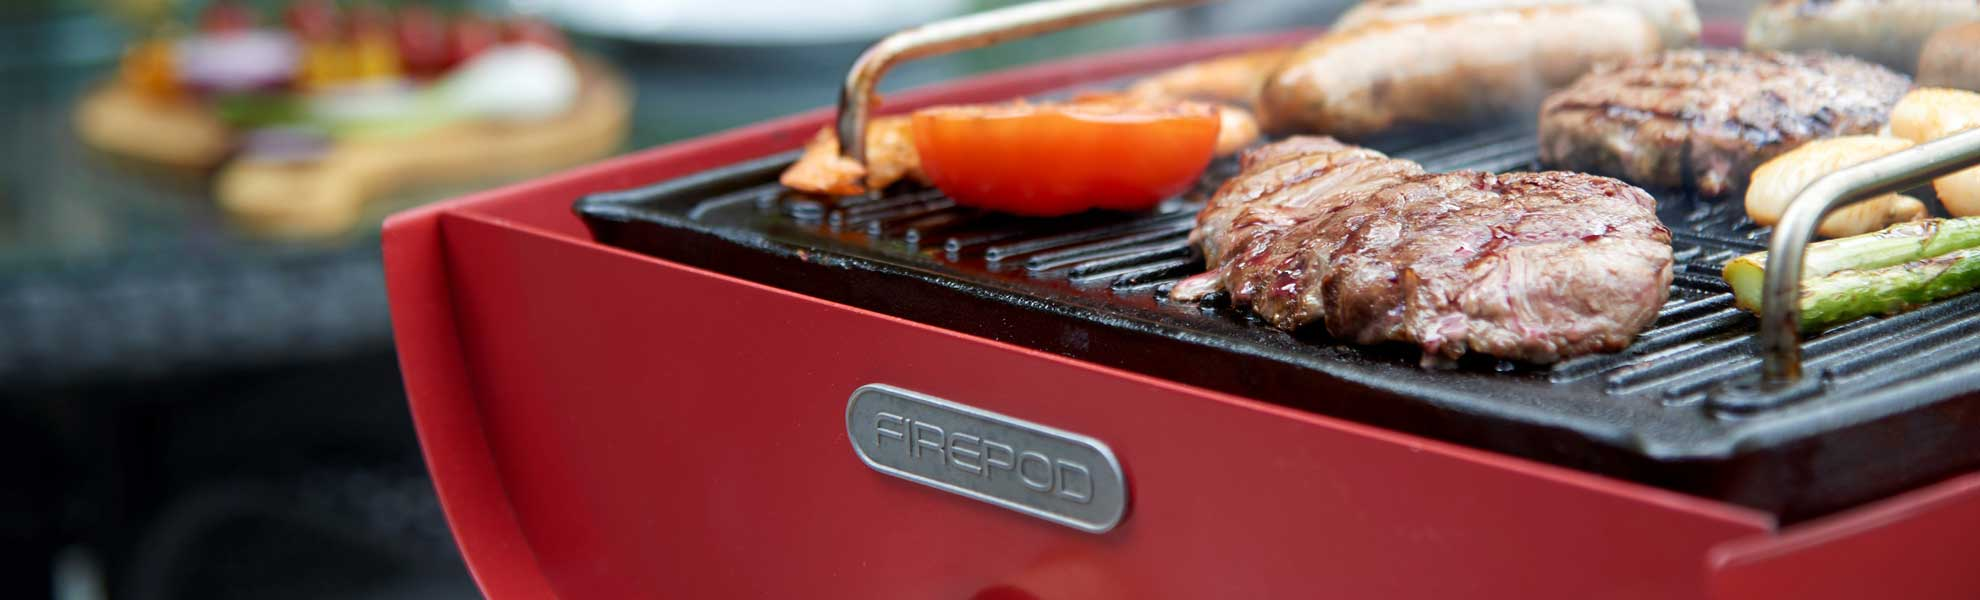 The Firepod Outdoor Cooking Oven Outdoor Gas Oven Griddle Reversible